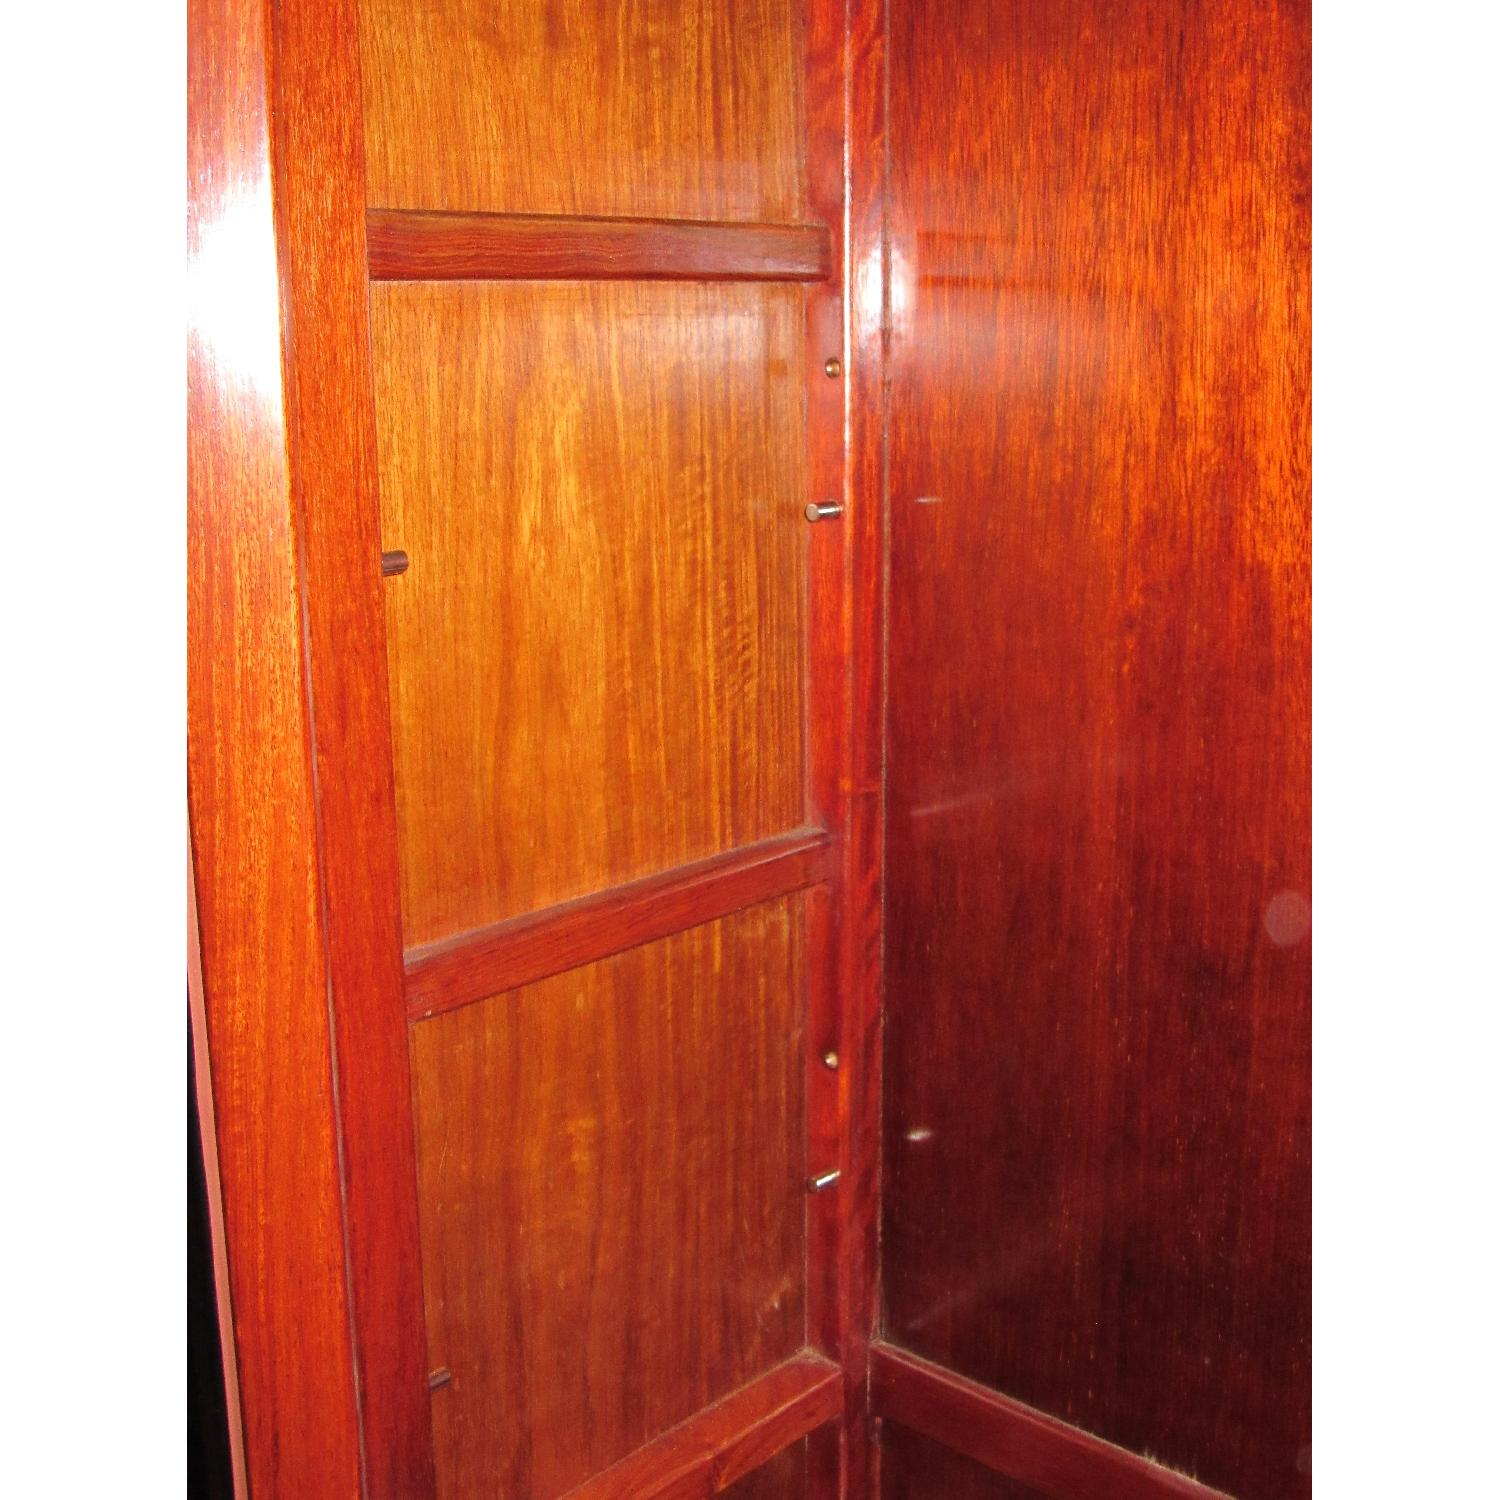 Rosewood Elm Glass Door Cabinets - 2 Available - image-5